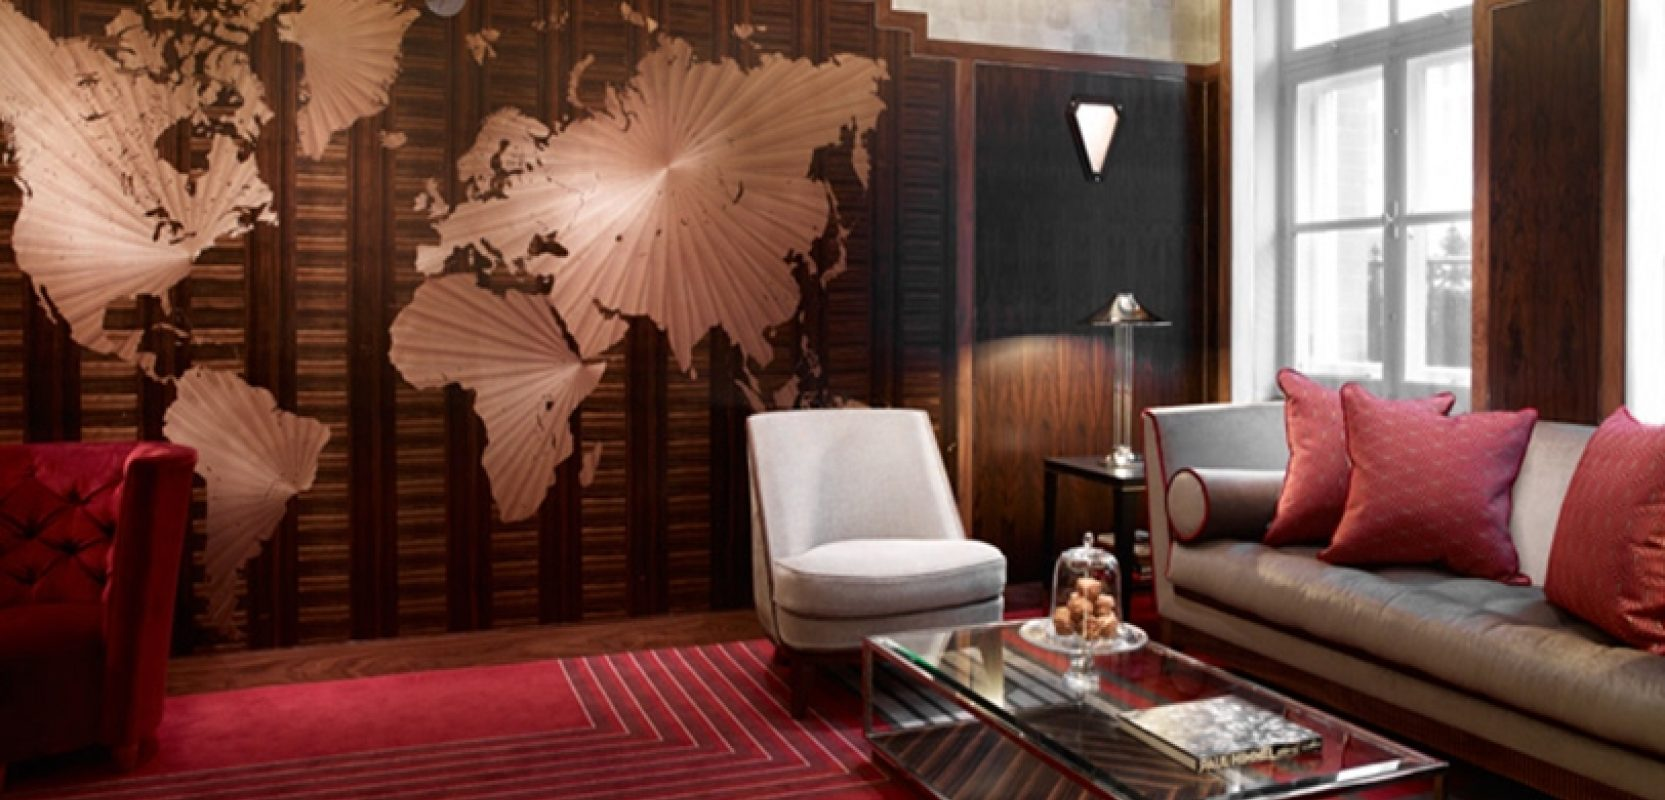 Images of The Map Room, Claridge's Hotel project